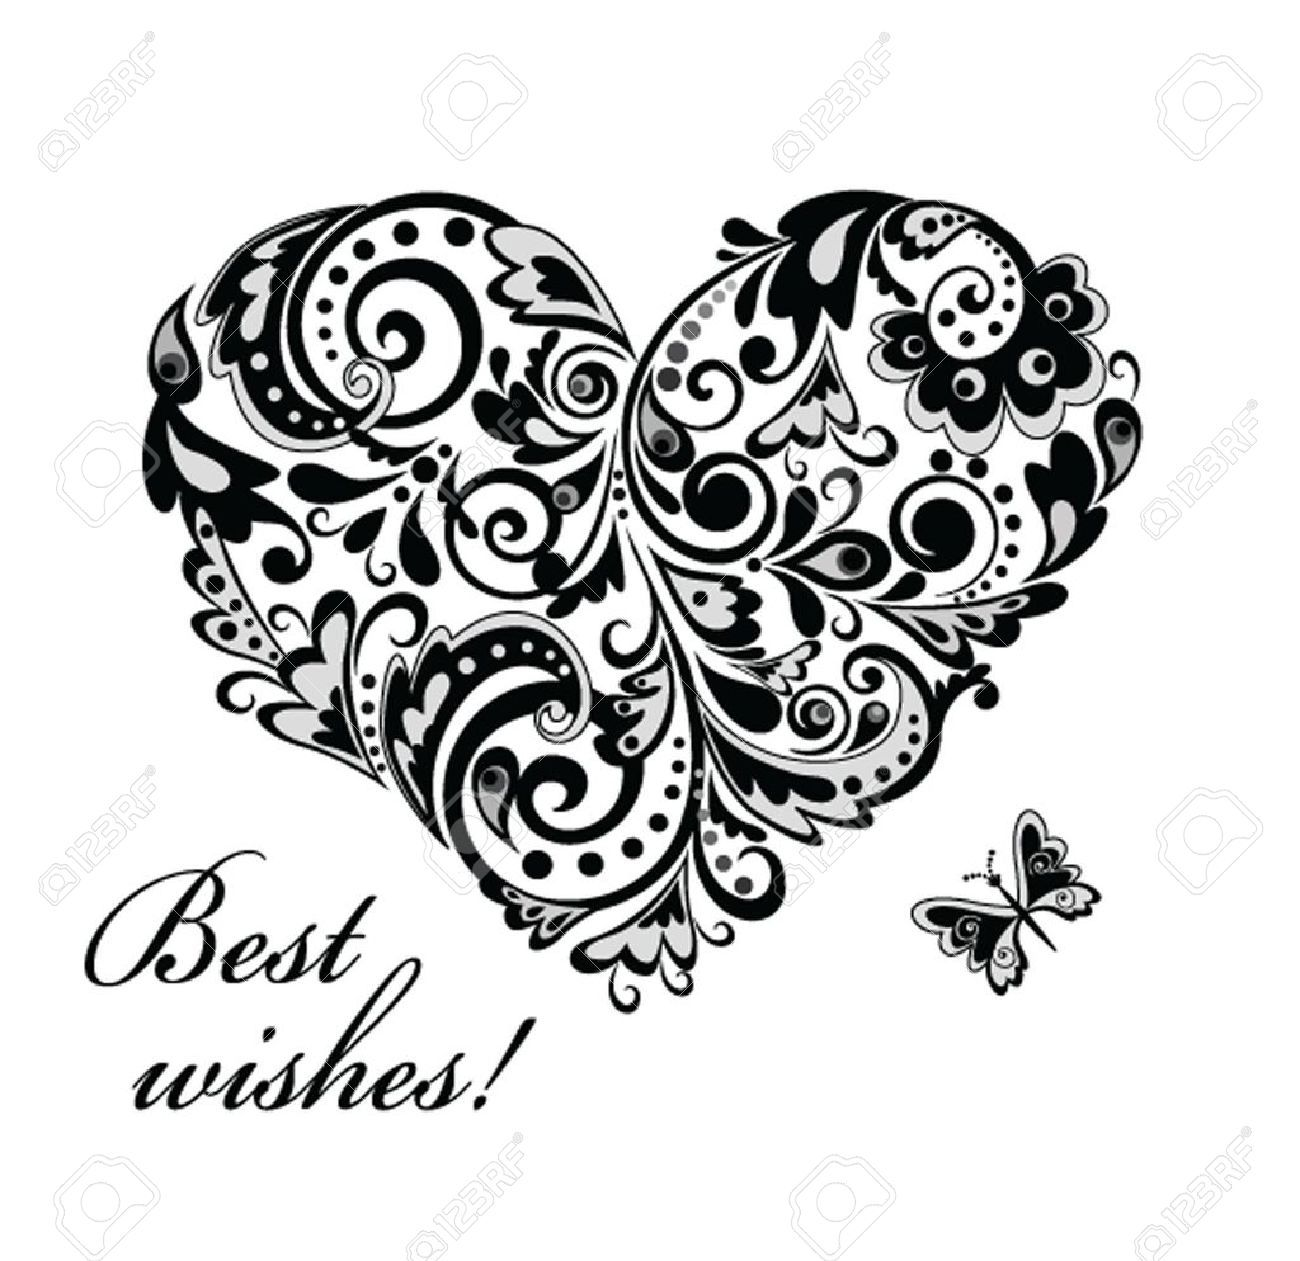 Image Result For Black And White Heart Stencil